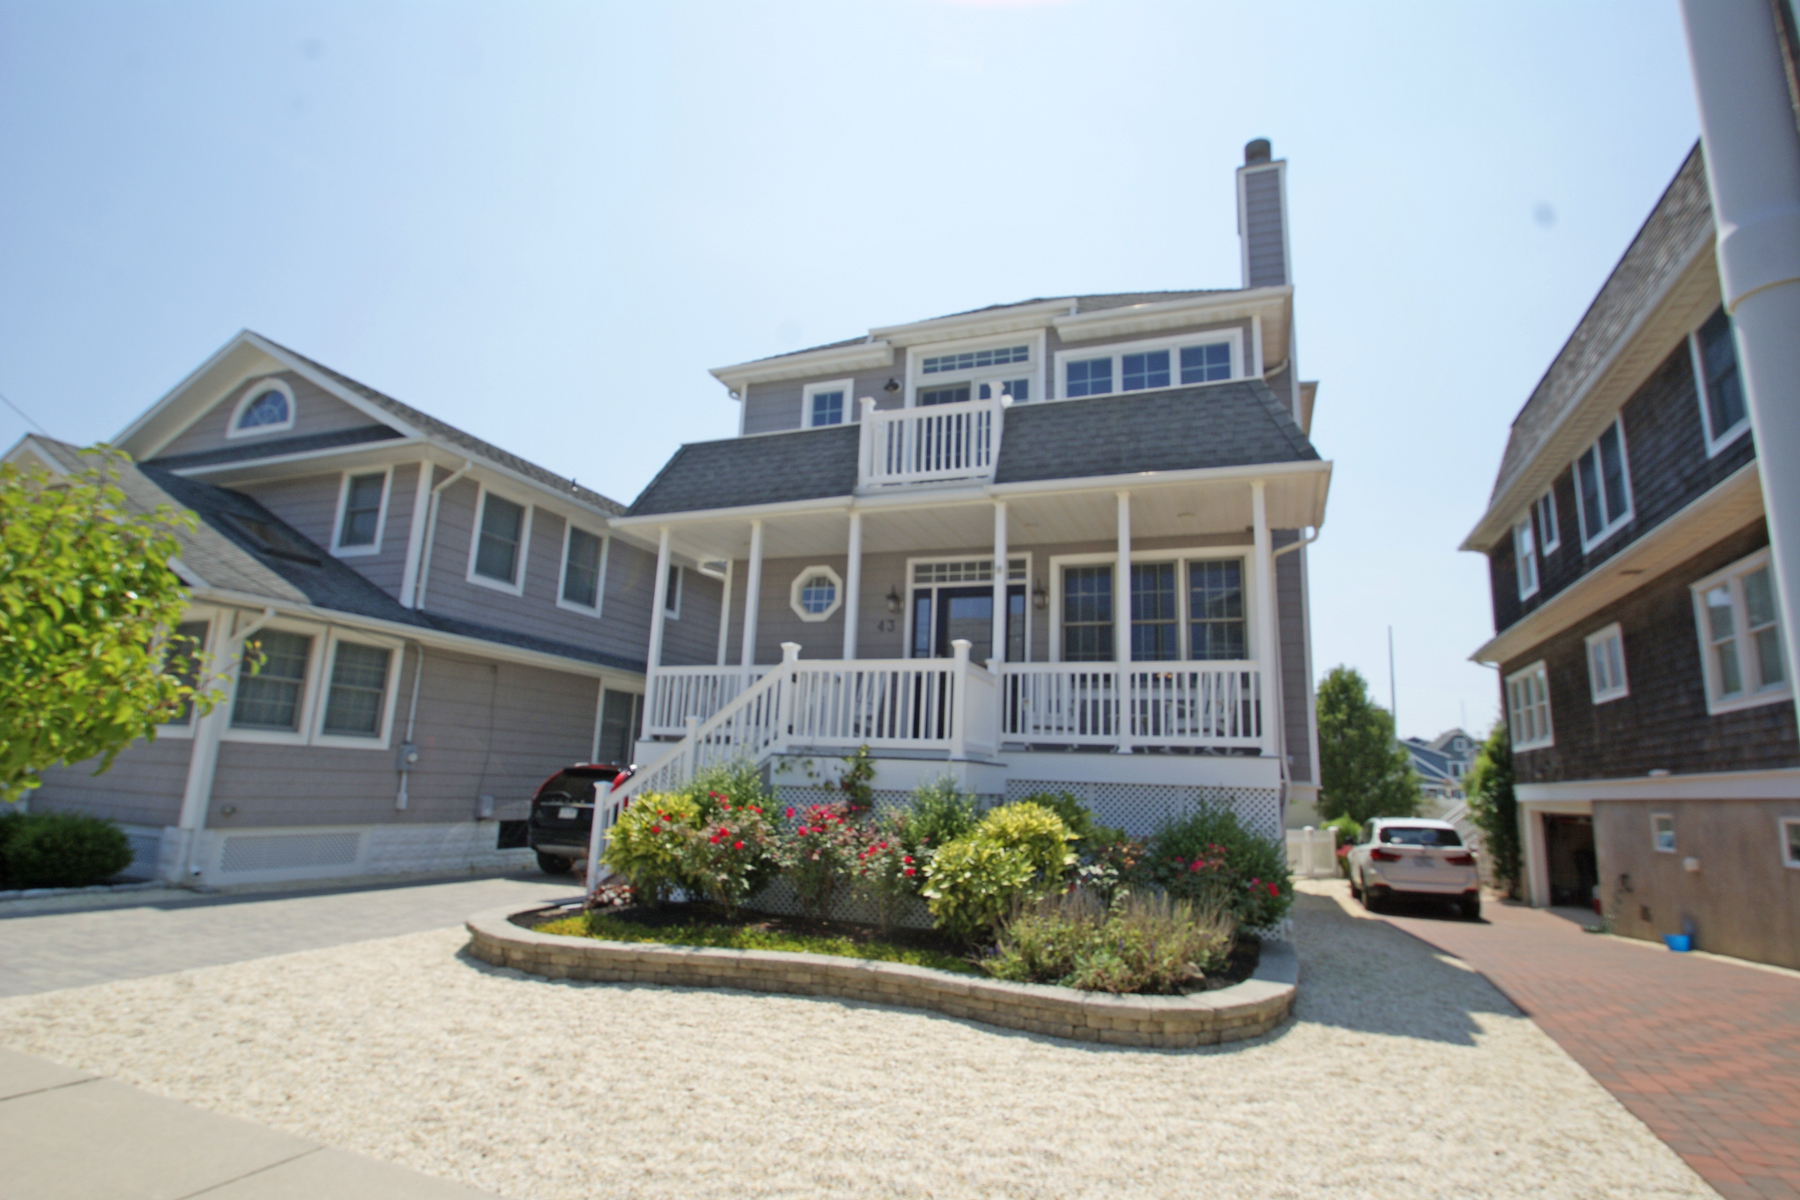 Moradia para Venda às Custom Built Oceanblock Home 43 3rd Avenue, Normandy Beach, Nova Jersey 08739 Estados Unidos